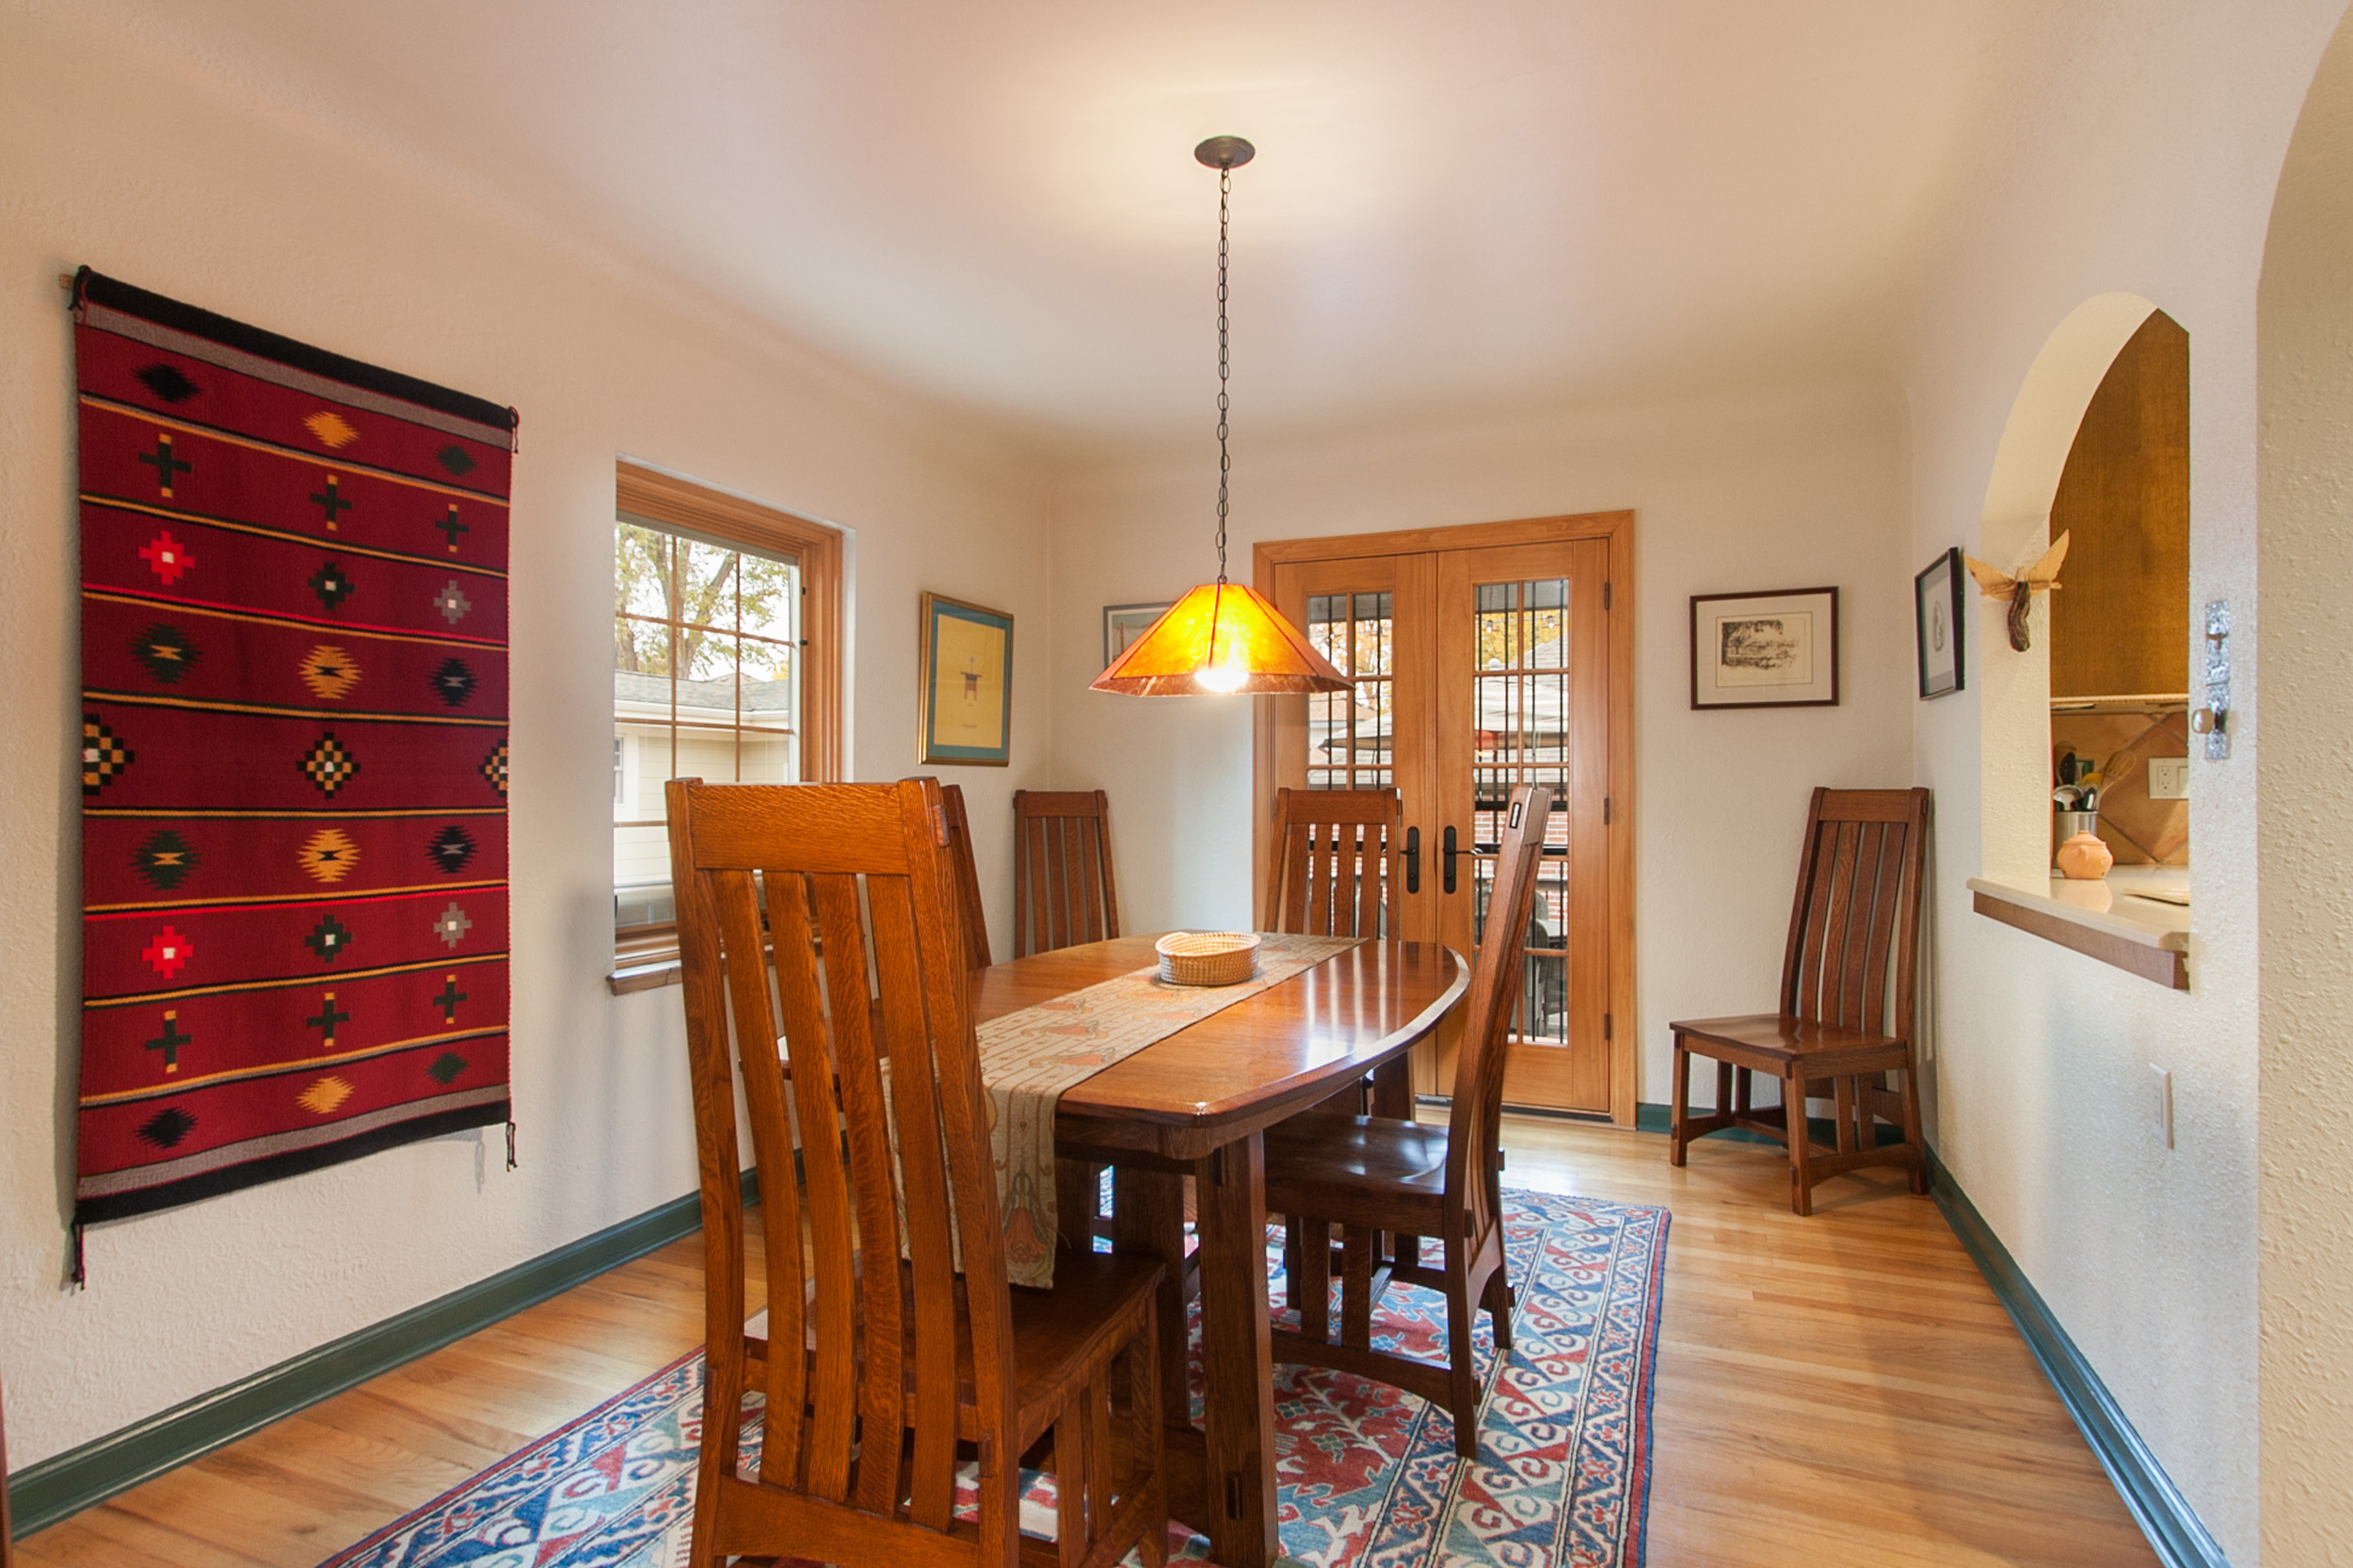 1114191_Dining-Room-Has-French-Doors-to-Deck_high.jpg